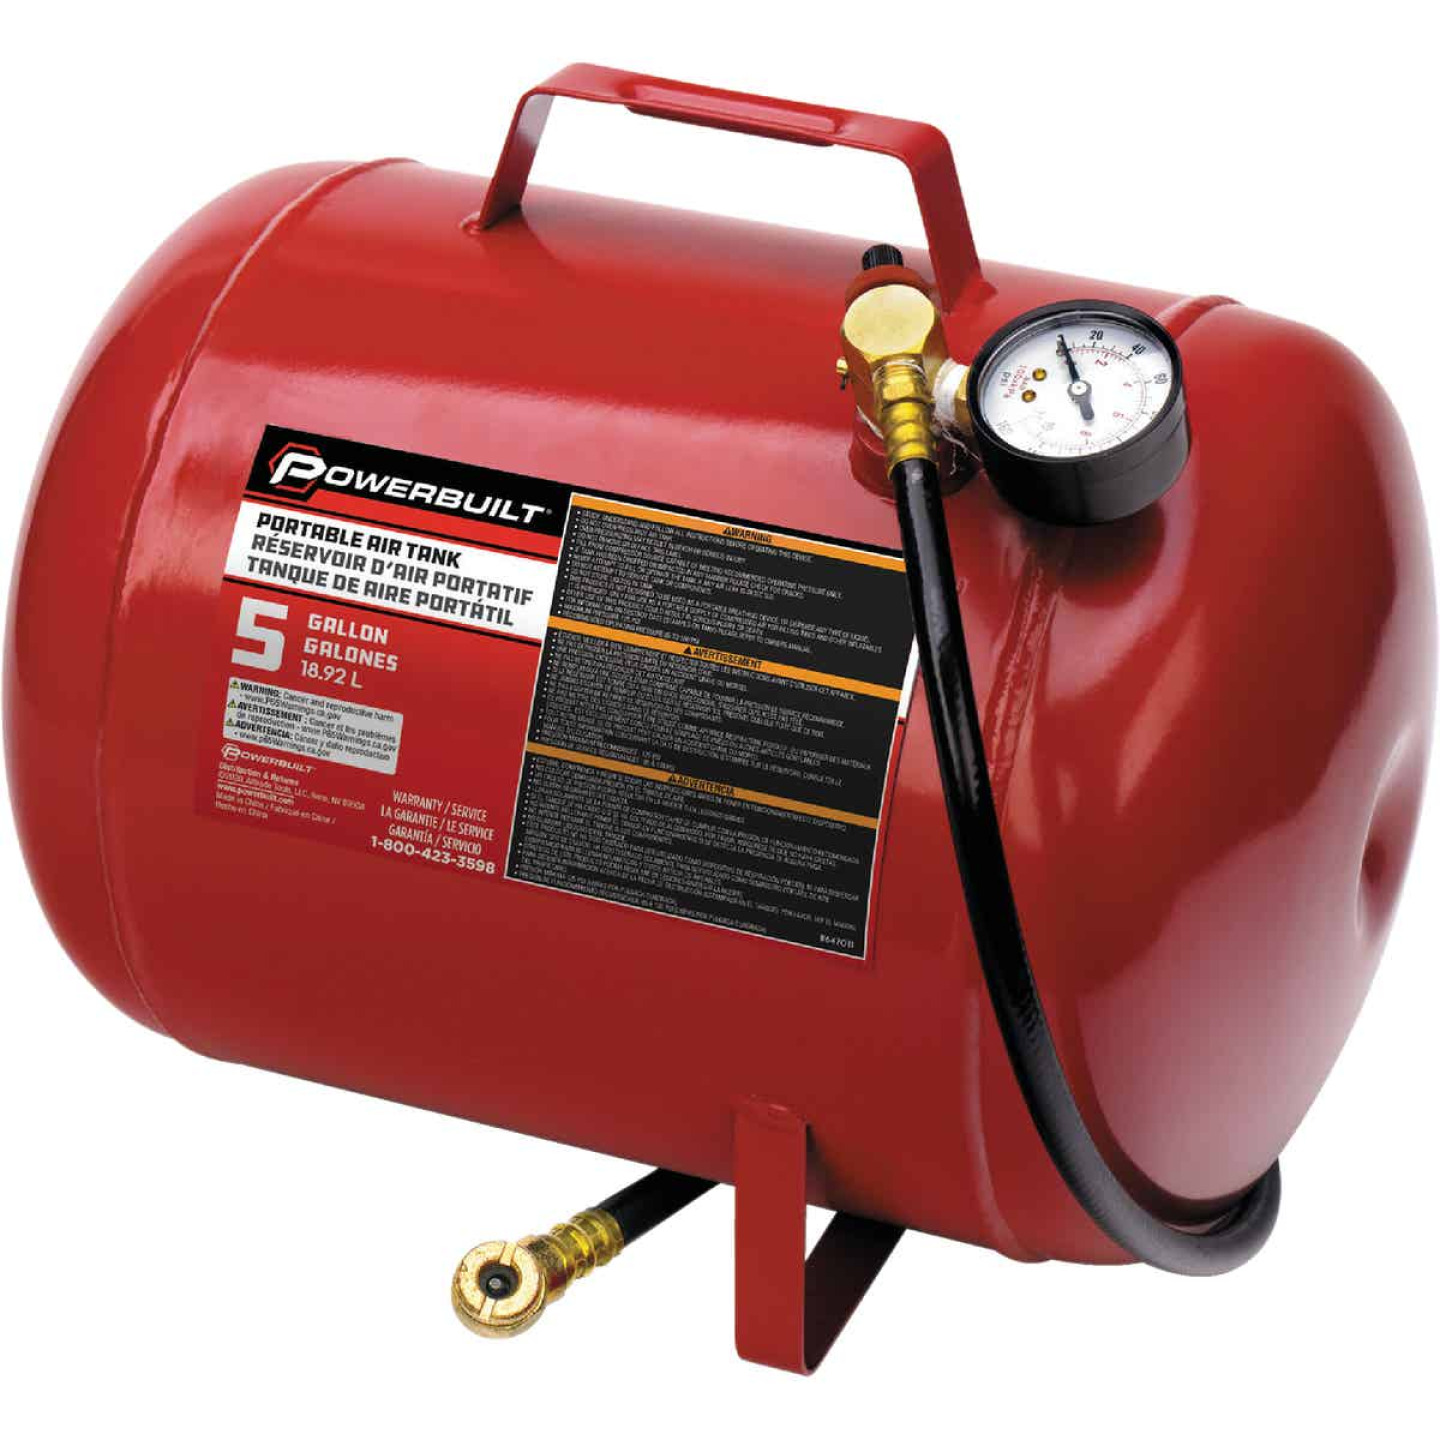 Powerbuilt 5 Gallon Portable Shop Air Tank Image 1